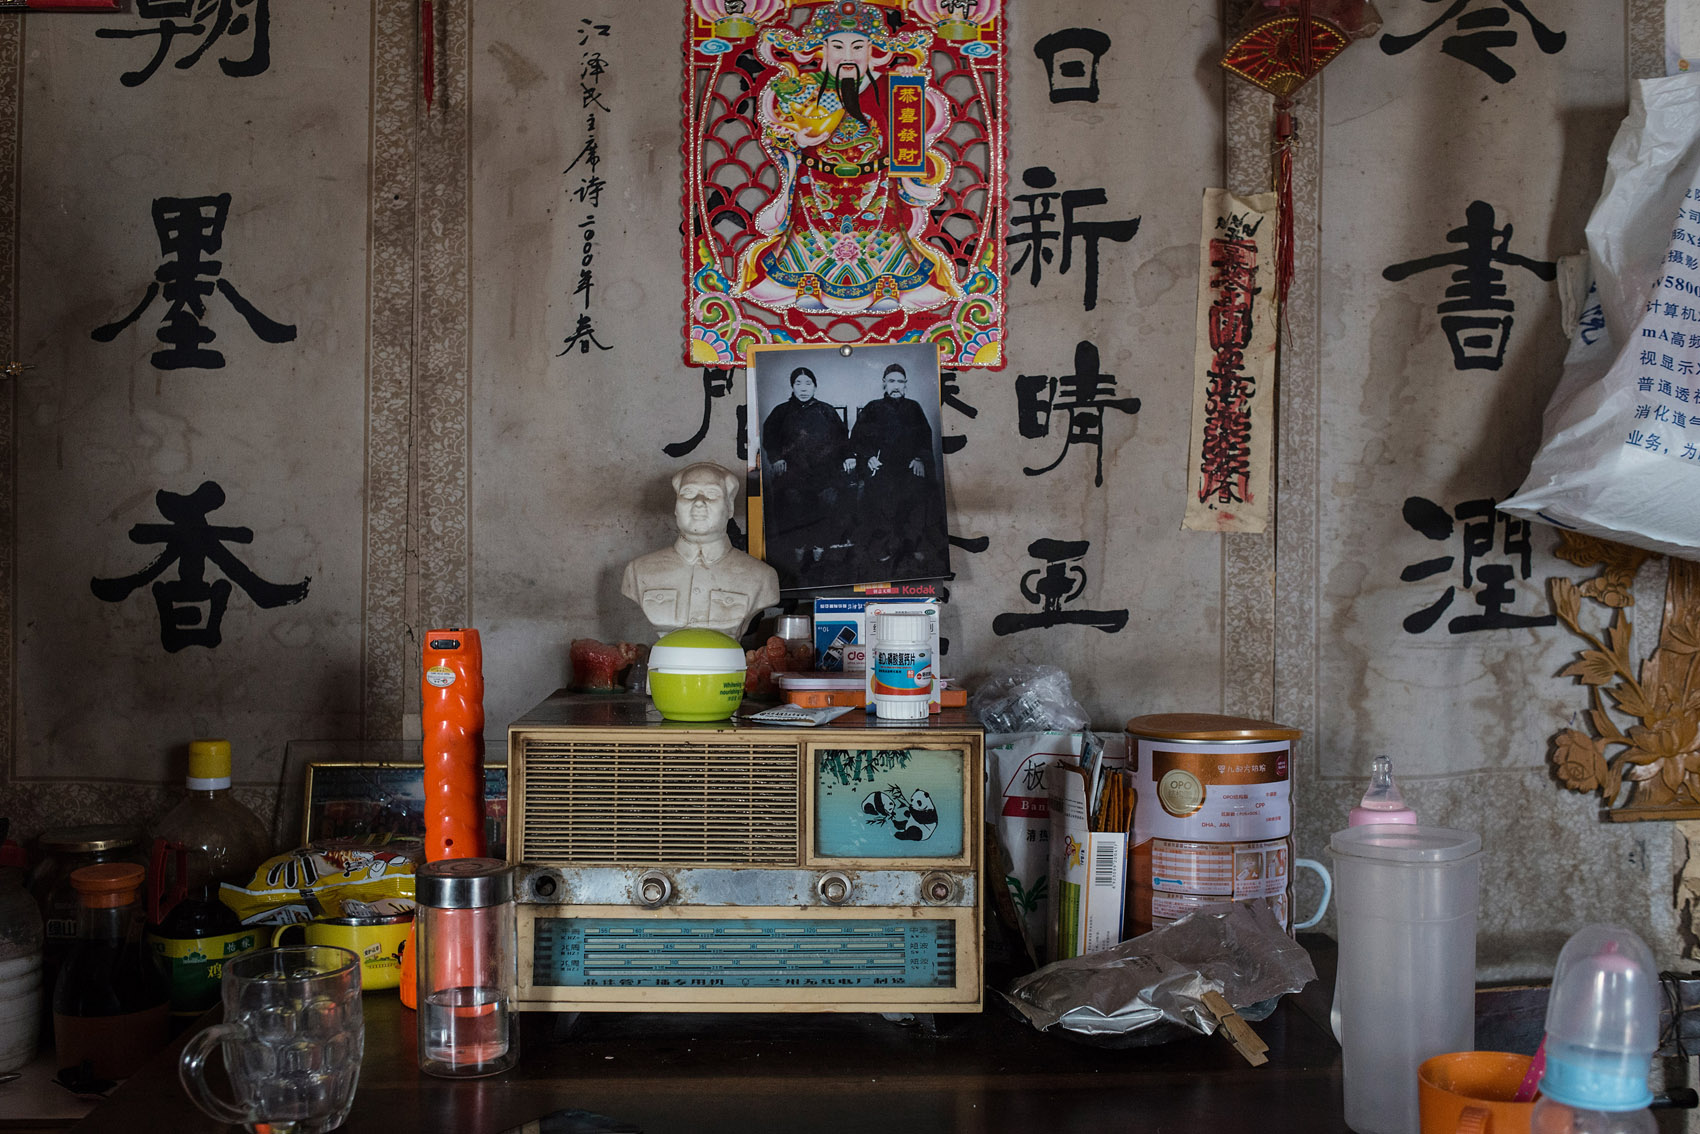 The ancestors altar in the home of  Chen Guiqin and Liu Yanggao. The calligraphy is a quote from former Communist Party Secretary Jiang Zemin.